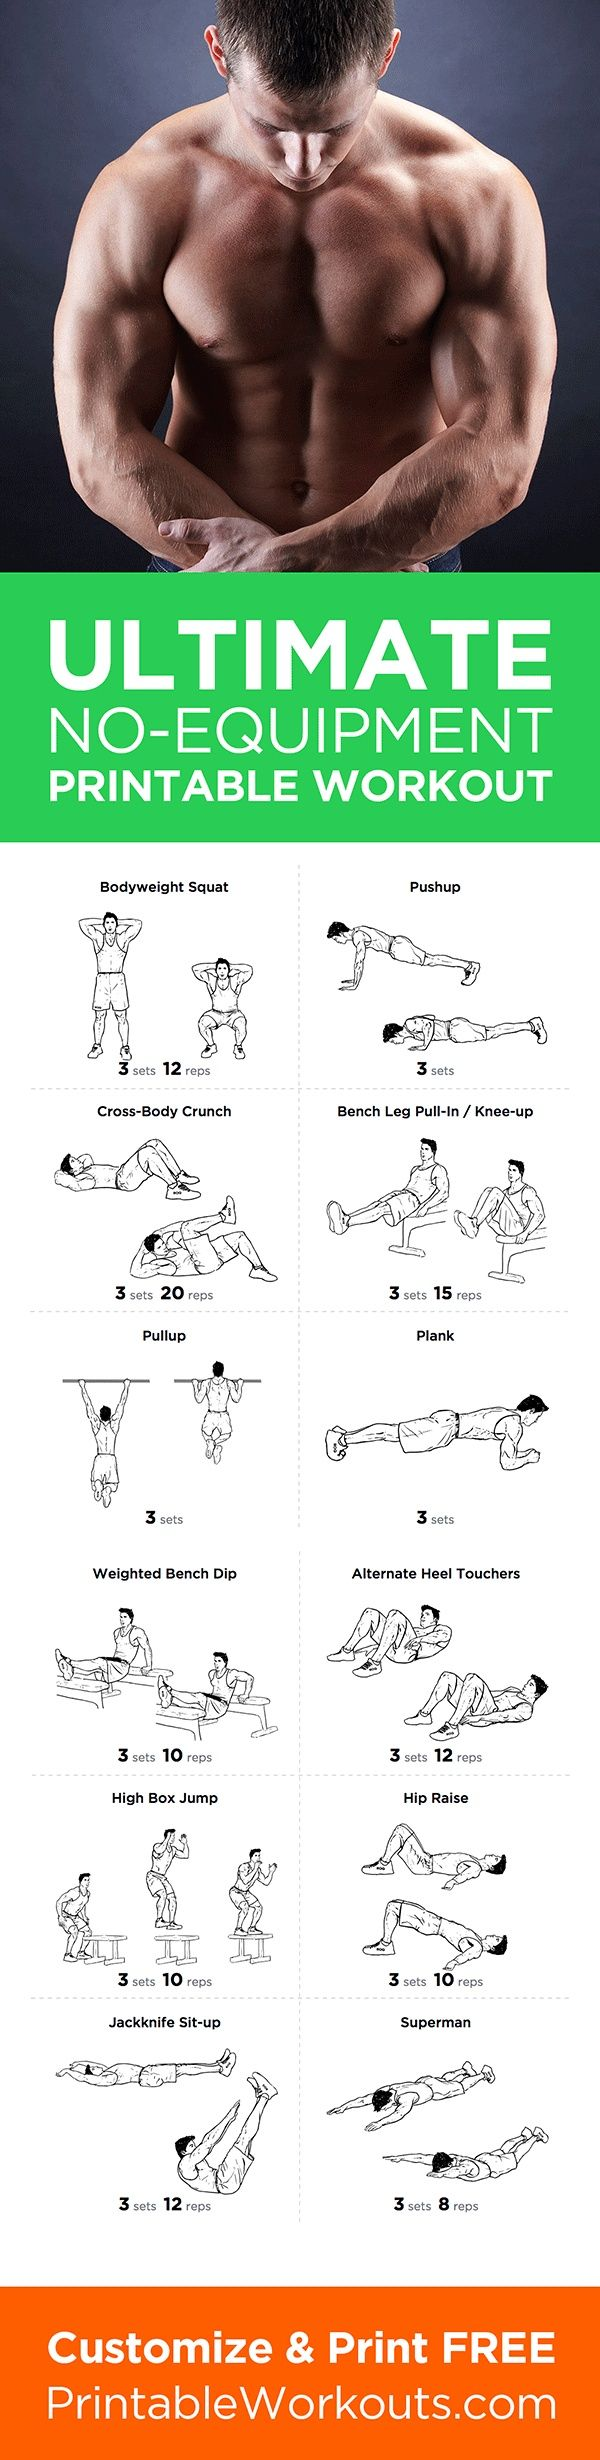 See more here ► https://www.youtube.com/watch?v=0KRTOVZ92_4 Tags: herbs for weight loss, how much weight will i lose calculator, free weight loss program - Try this full body no equipment at-home printable workout routine! Customize & print it at http://printableworkouts.com/ultimate-at-home-full-body-no-equipment-printable-workout-routine/ #exercise #diet #workout #fitness #health